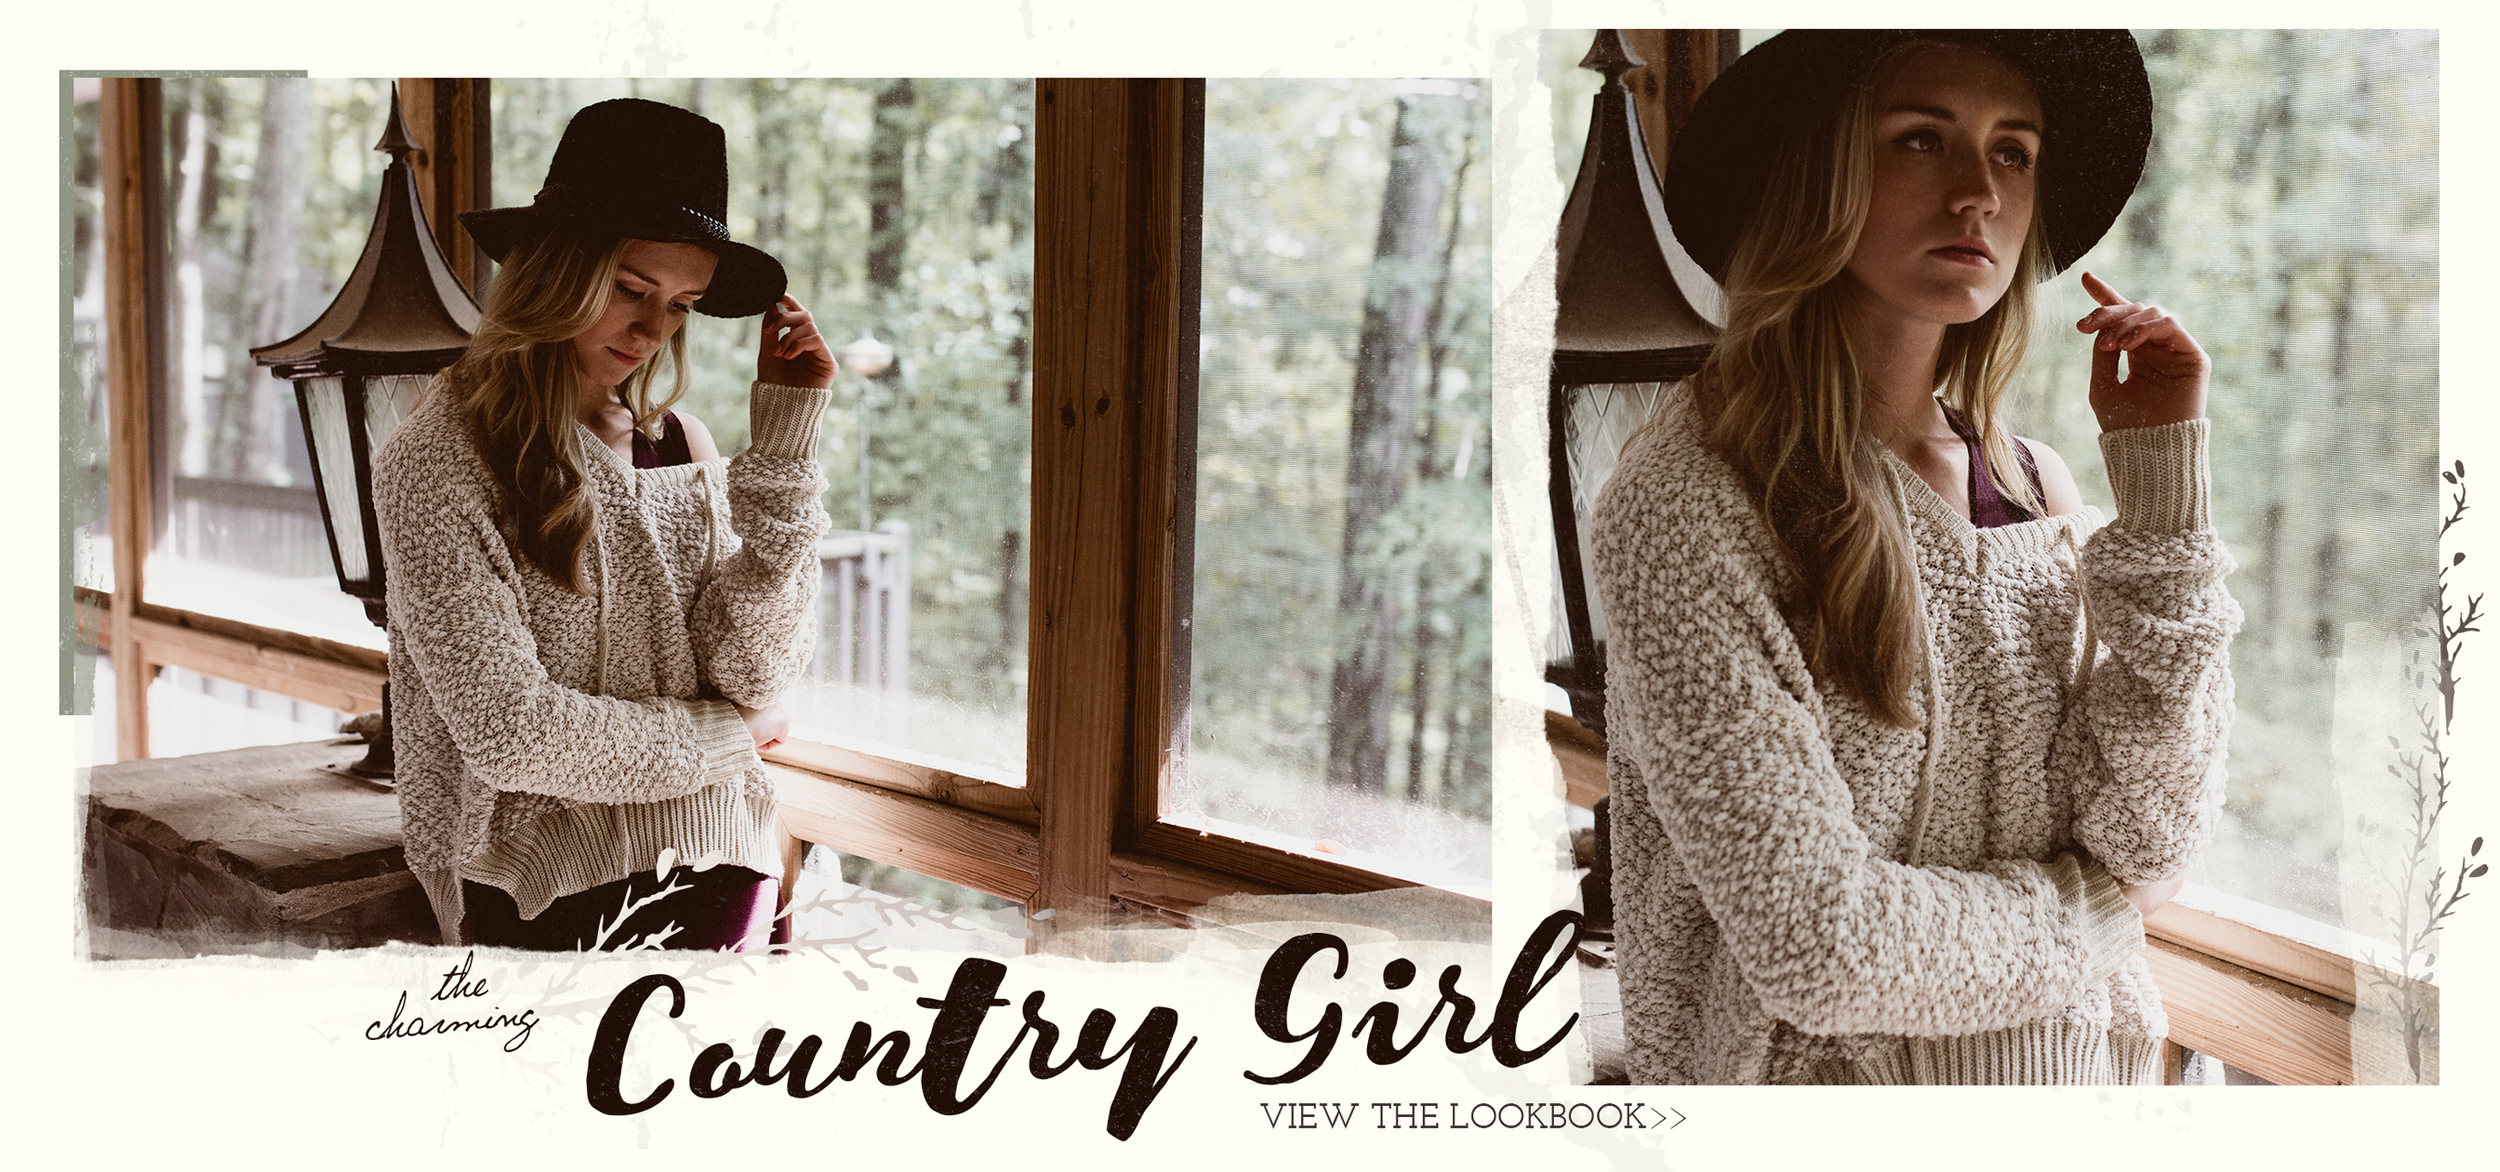 9-CountryLife-Lookbook.jpg